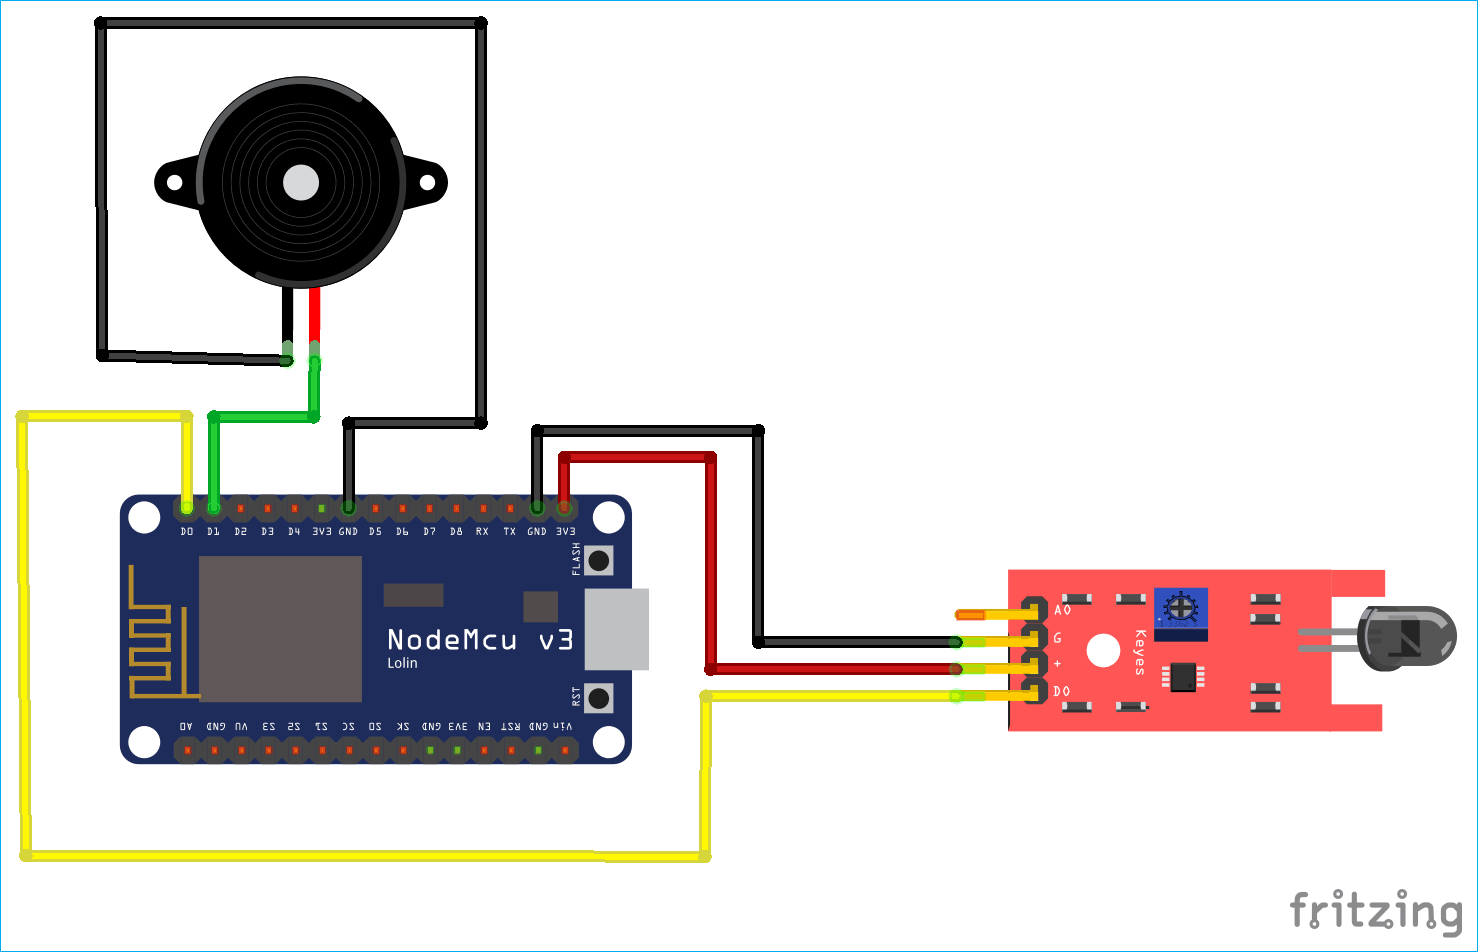 IoT based Fire Alarm System Project using NodeMCU ESP8266